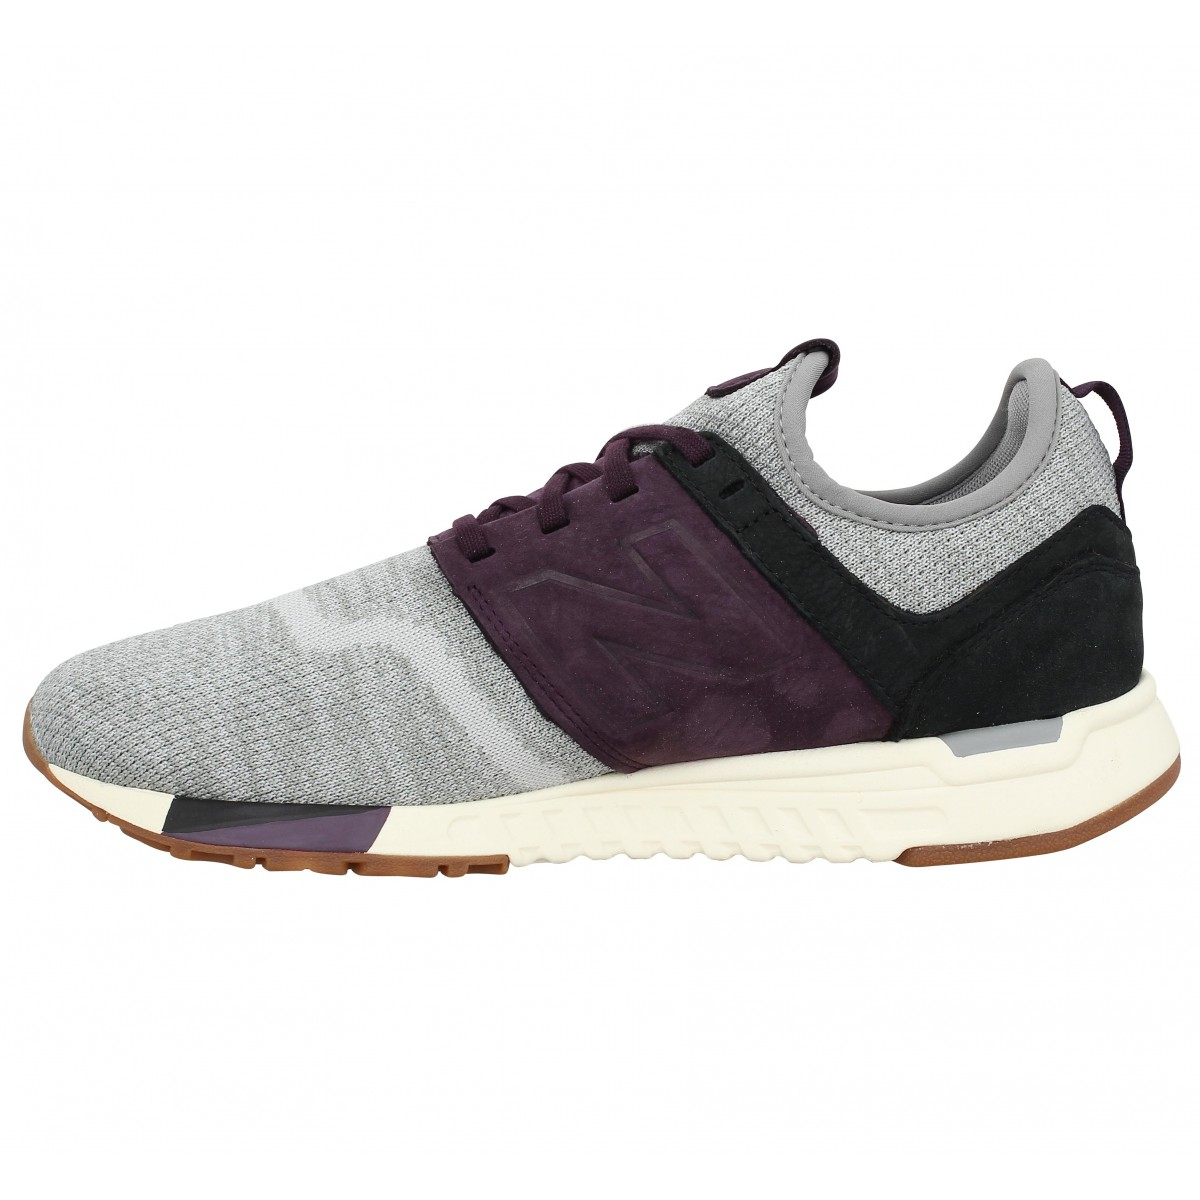 soldes new balance 247 luxe velours toile homme grey homme fanny chaussures. Black Bedroom Furniture Sets. Home Design Ideas